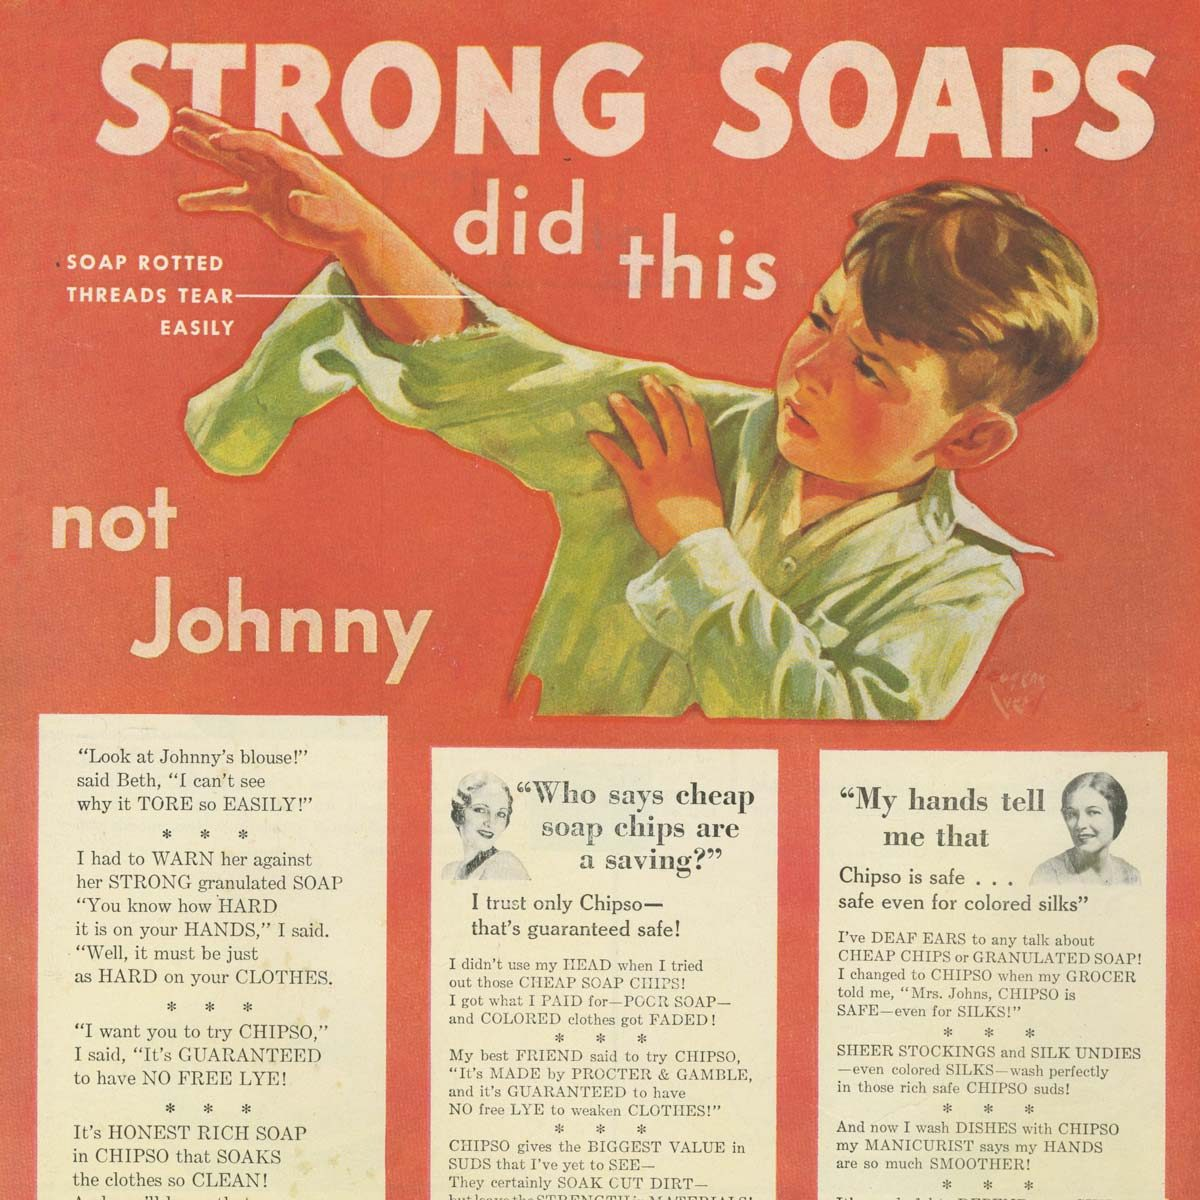 Vintage laundry soap ad